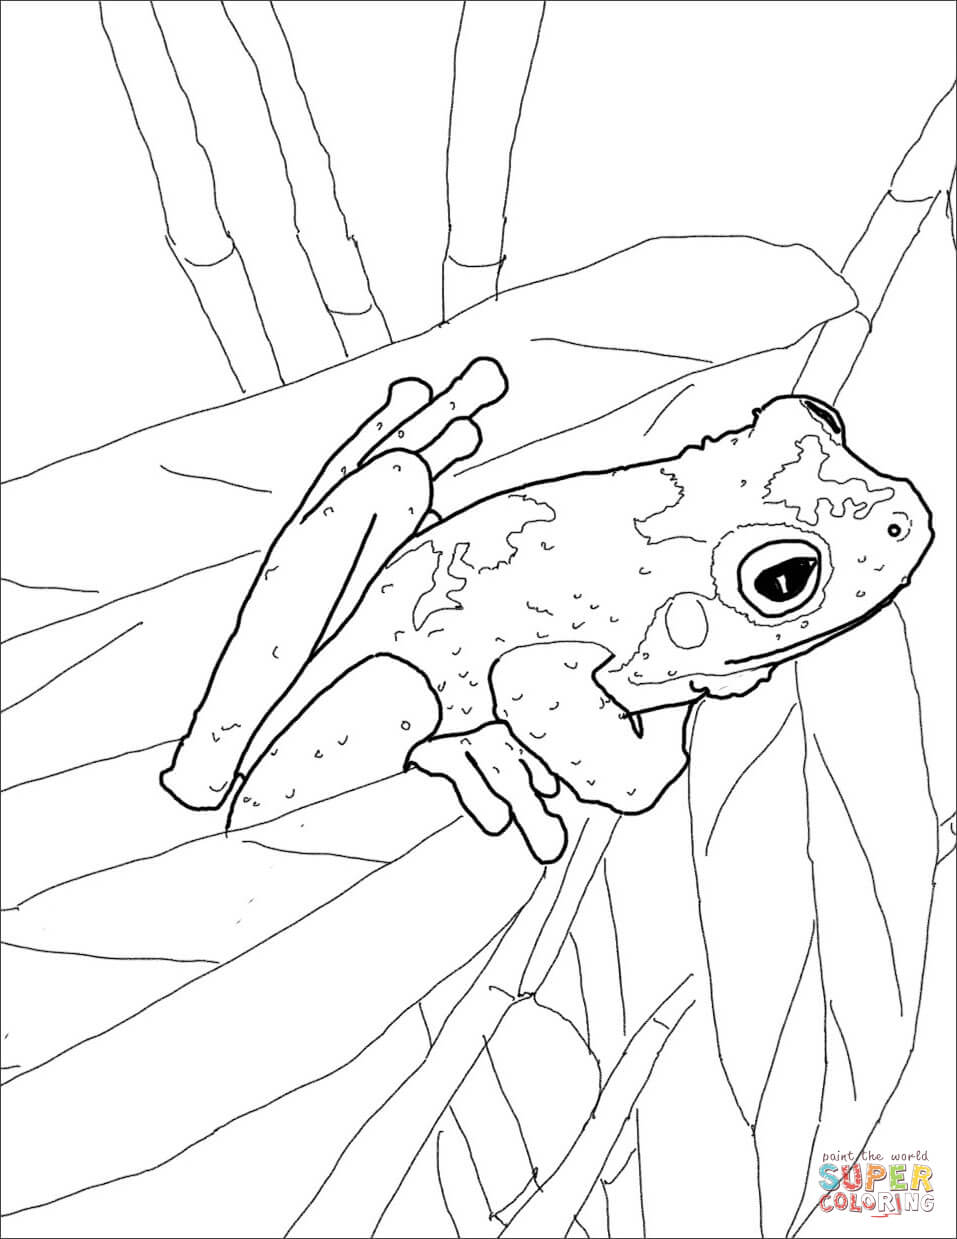 Red Eyed Tree Frog Coloring Page At Getdrawings Com Free For